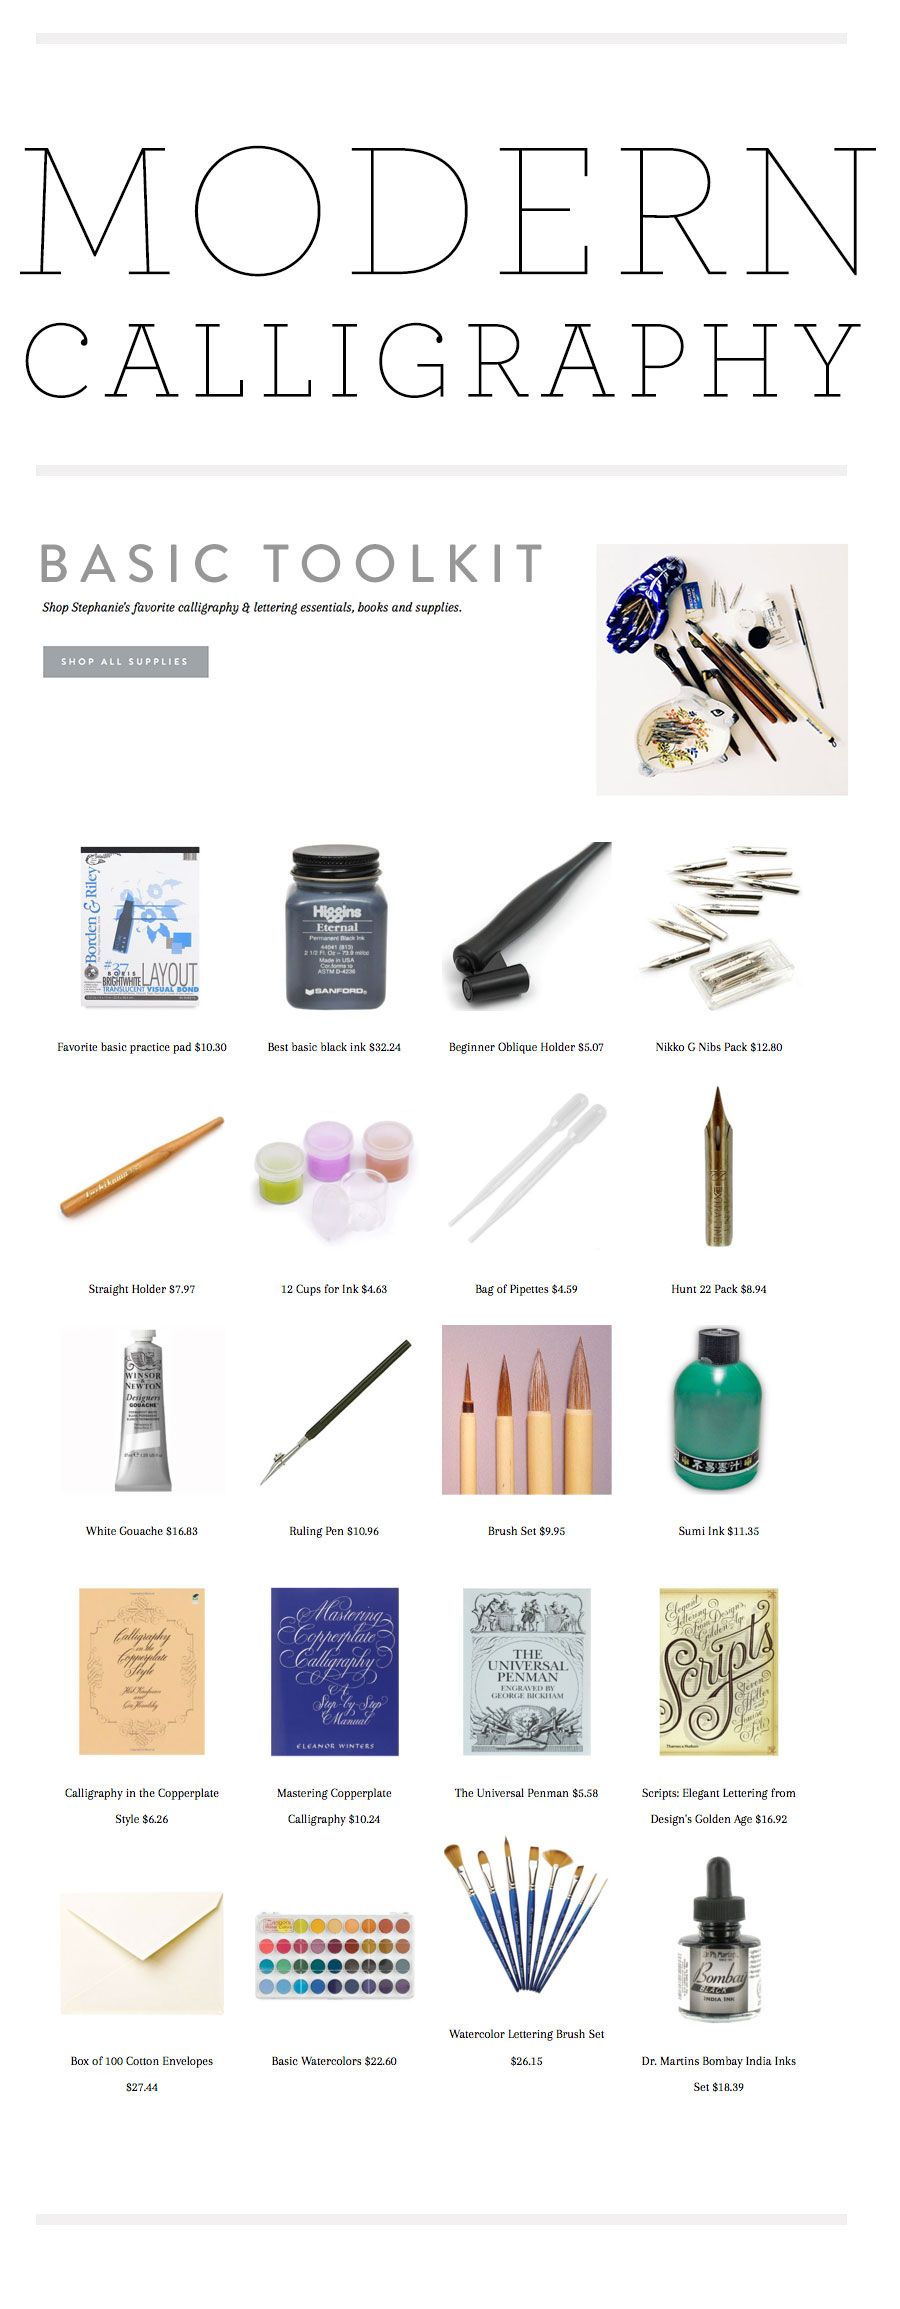 Basic Tool Kits For Calligraphy After Many Requests I Have Finally Started Adding My Favorite Supplies And Books Into Shop